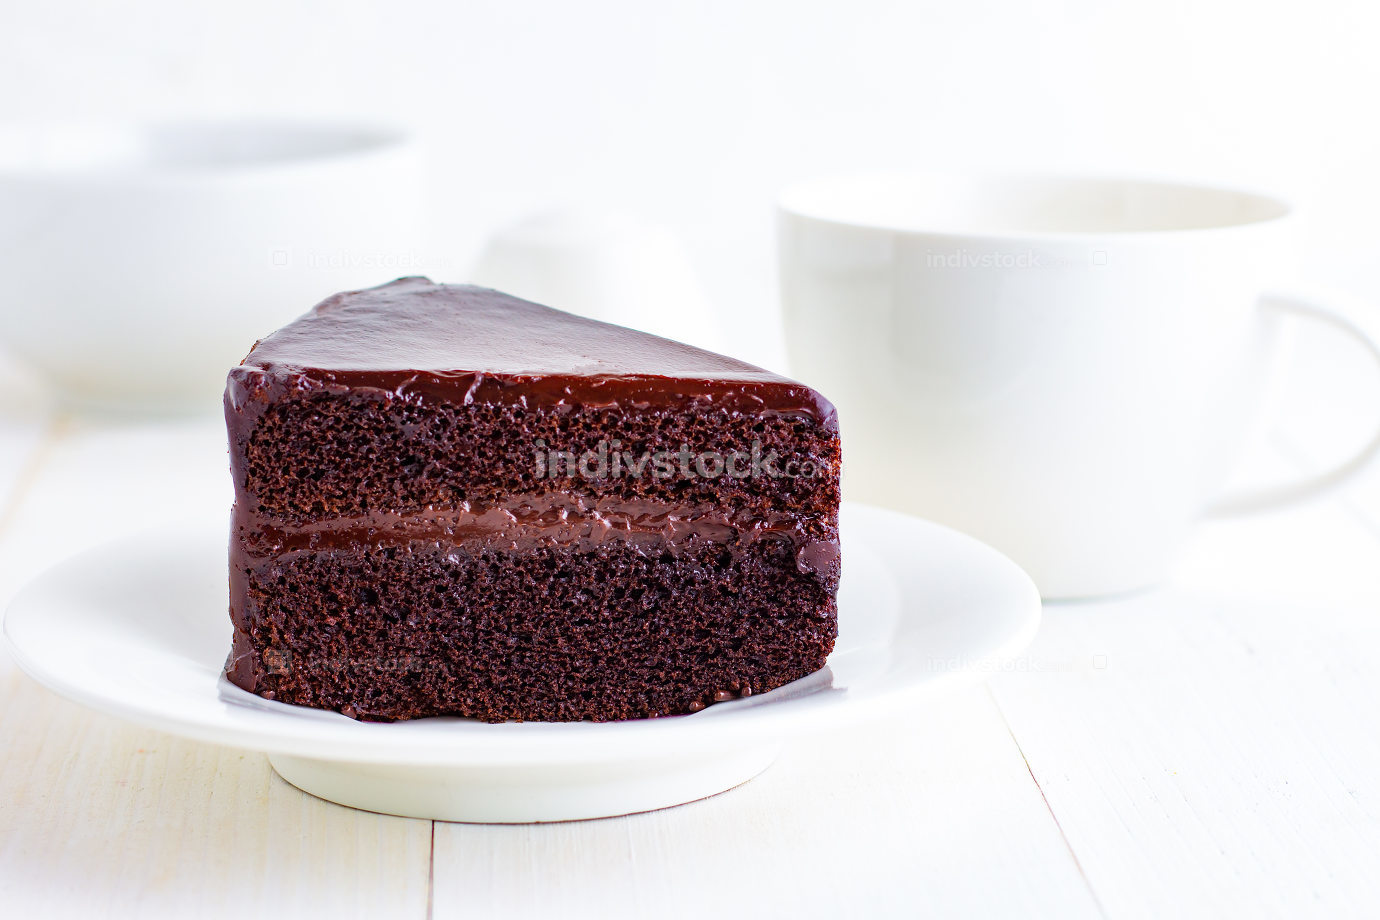 Chocolate Cake on white plate.